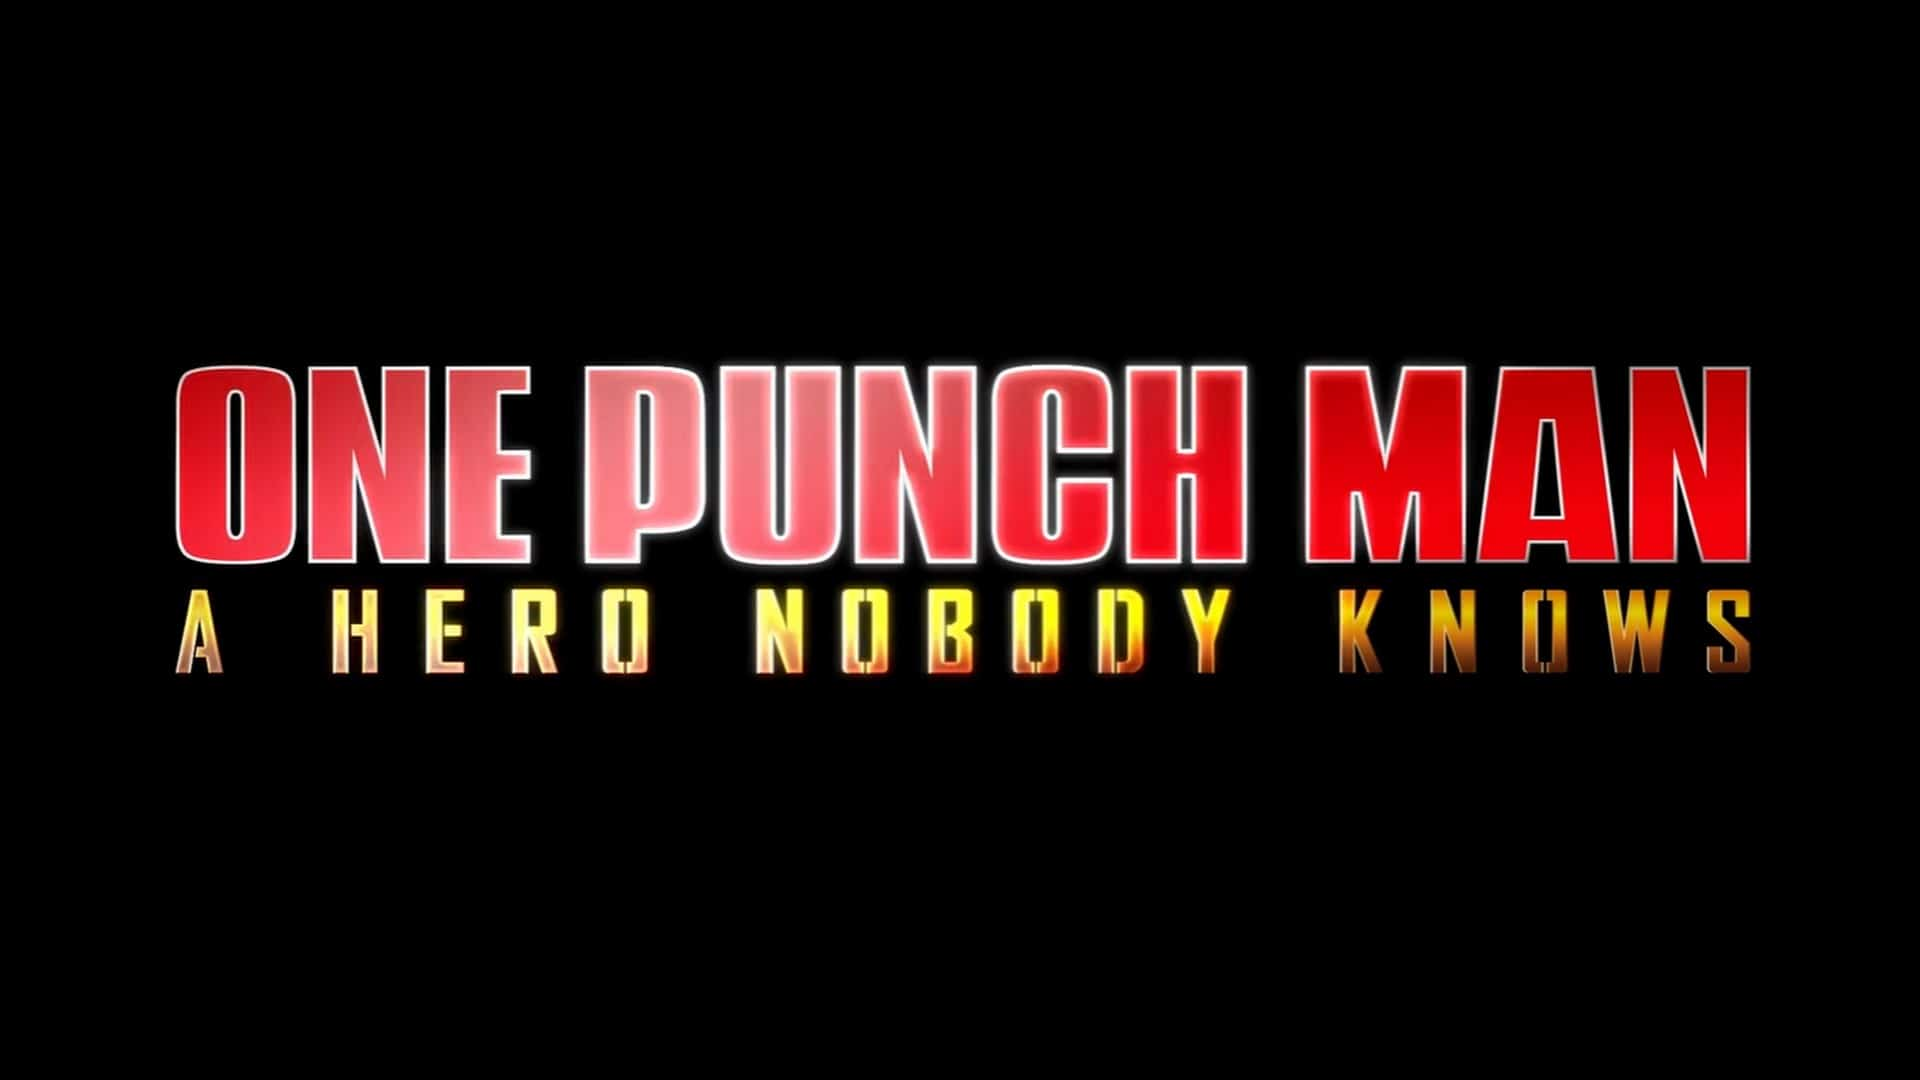 One Punch Man: A Hero Nobody Knows Punches His Way To Playstation 4, Xbox One & PC